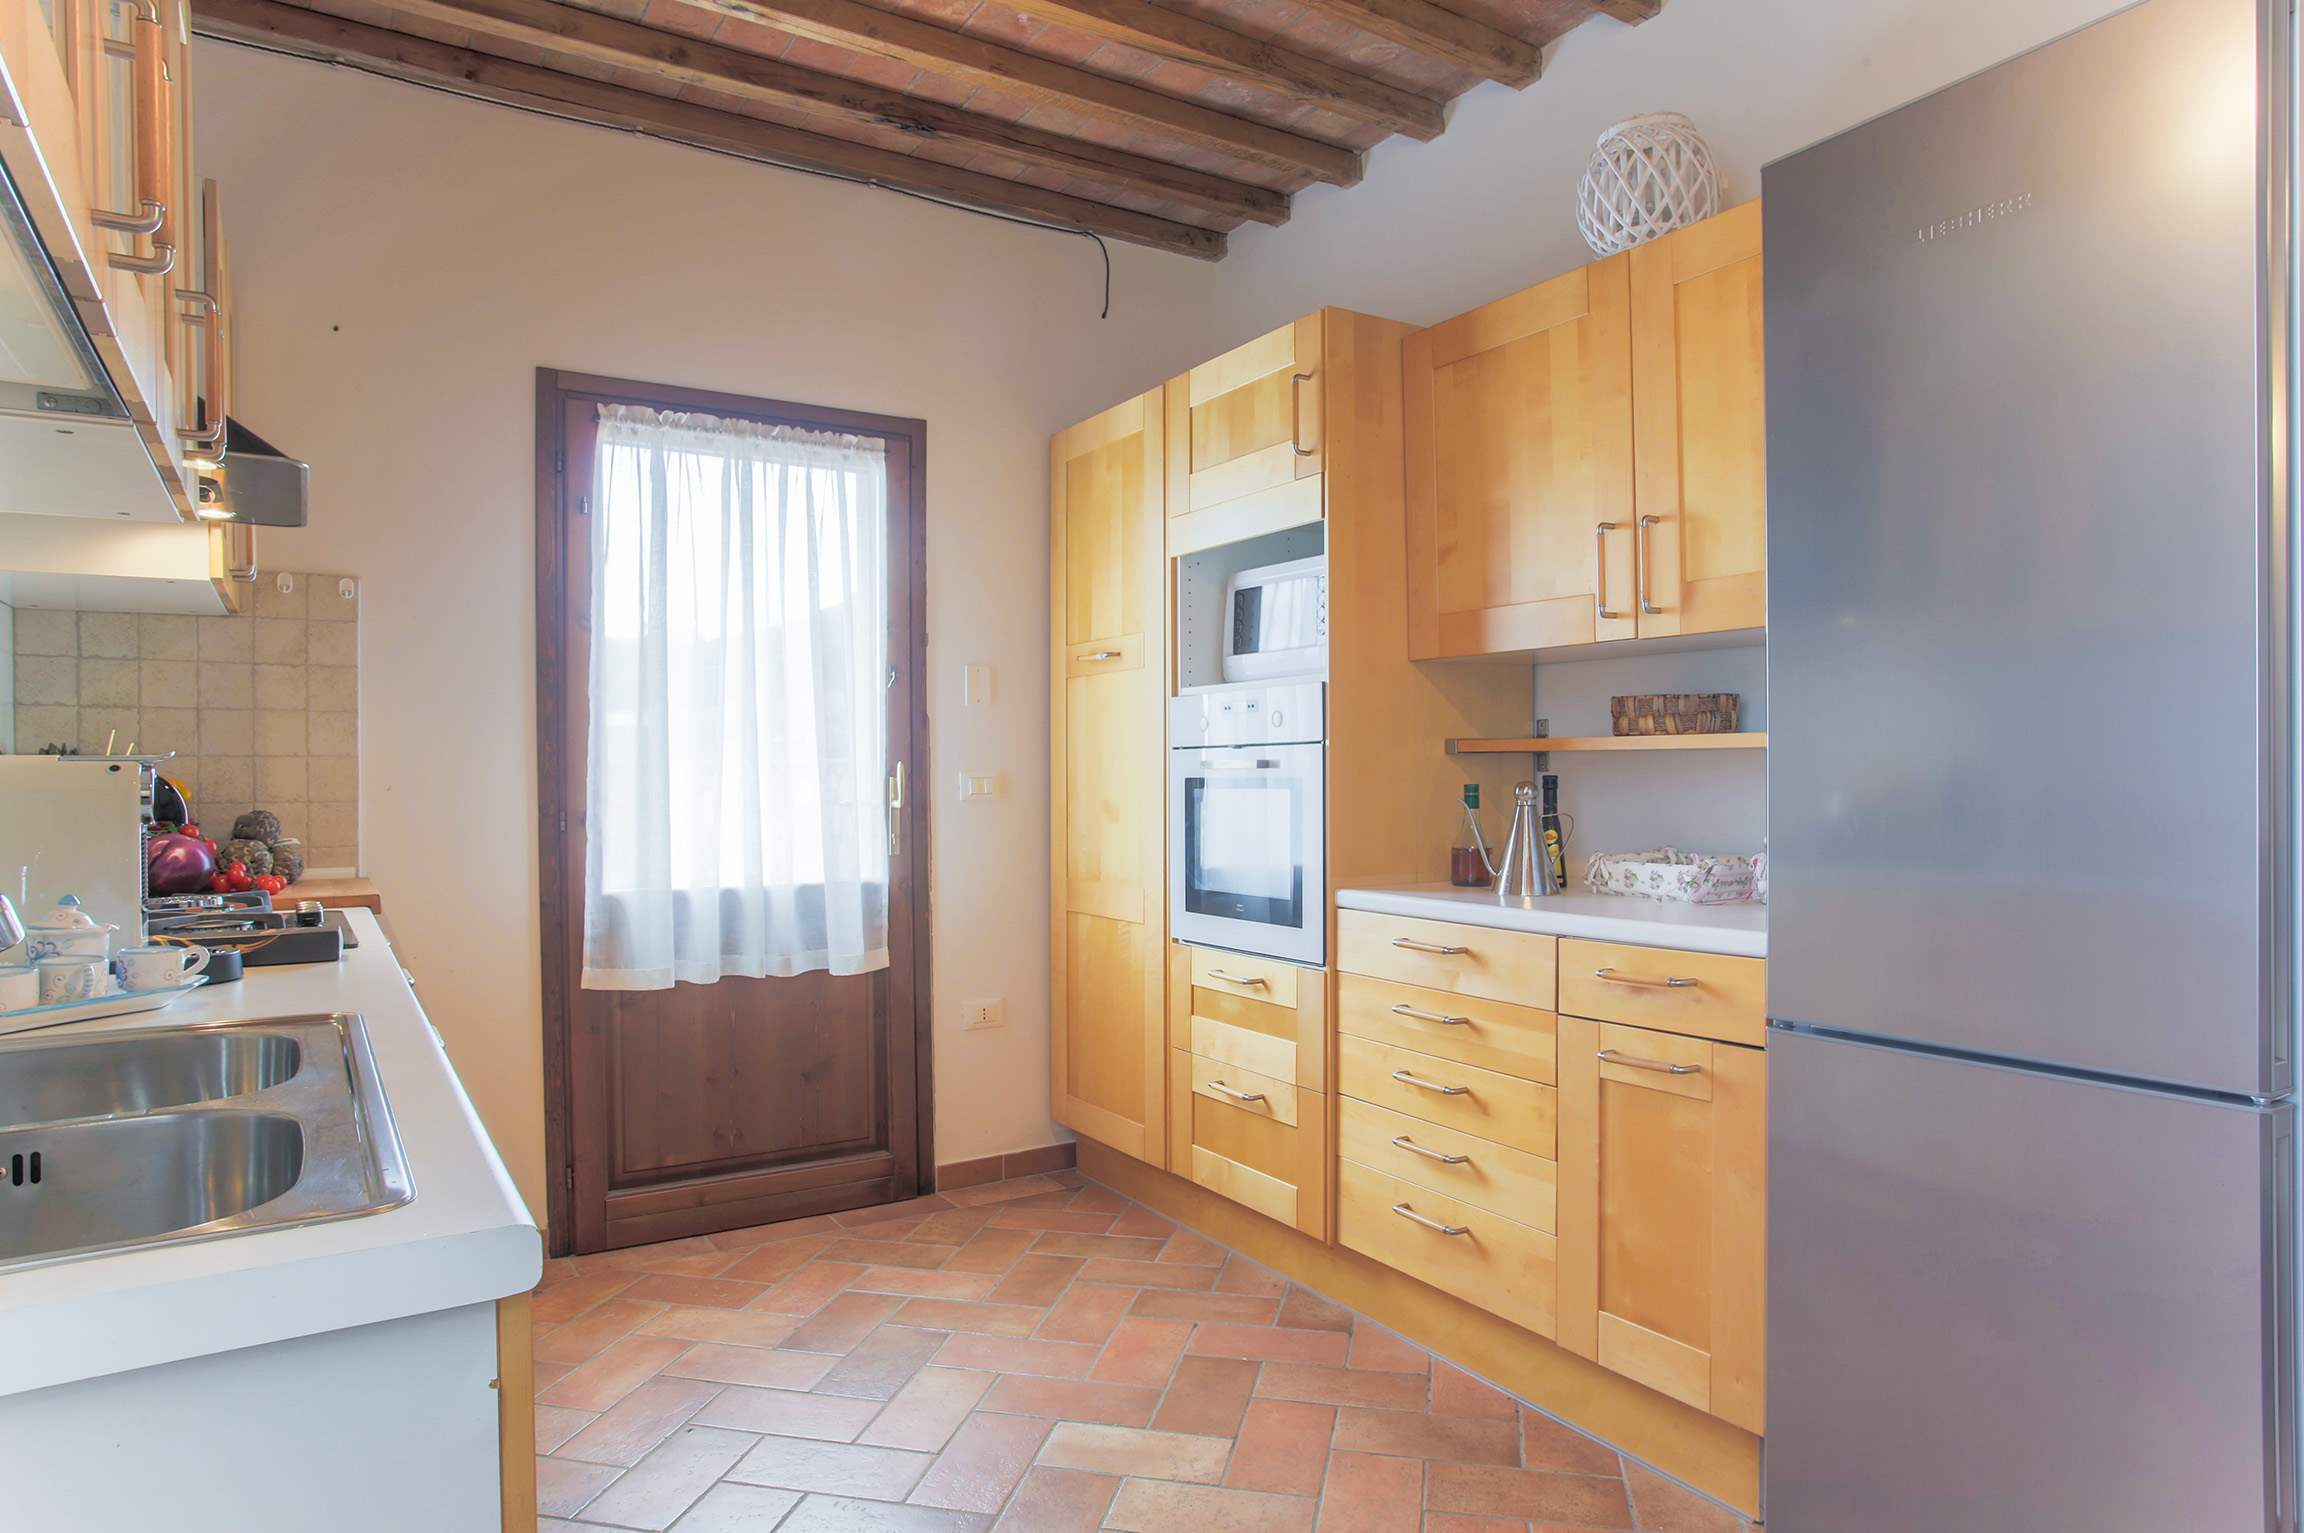 Casa Di Dante, 3 bedroom villa in North Tuscany - Pisa & Lucca Area, Tuscany Photo #13